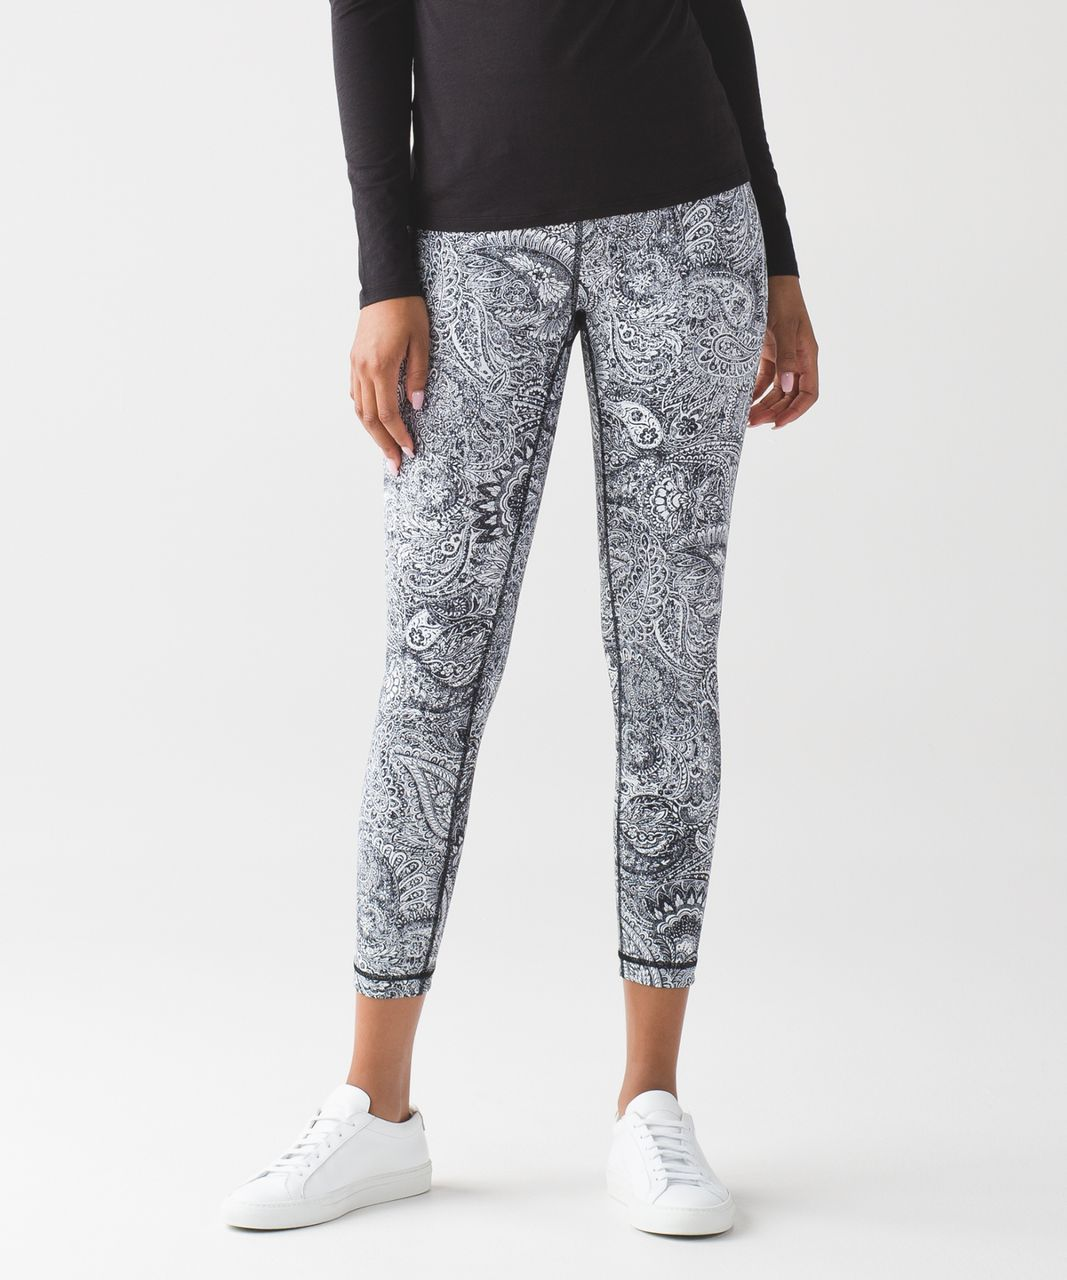 Lululemon High Times Pant - Antique Paisley White Black